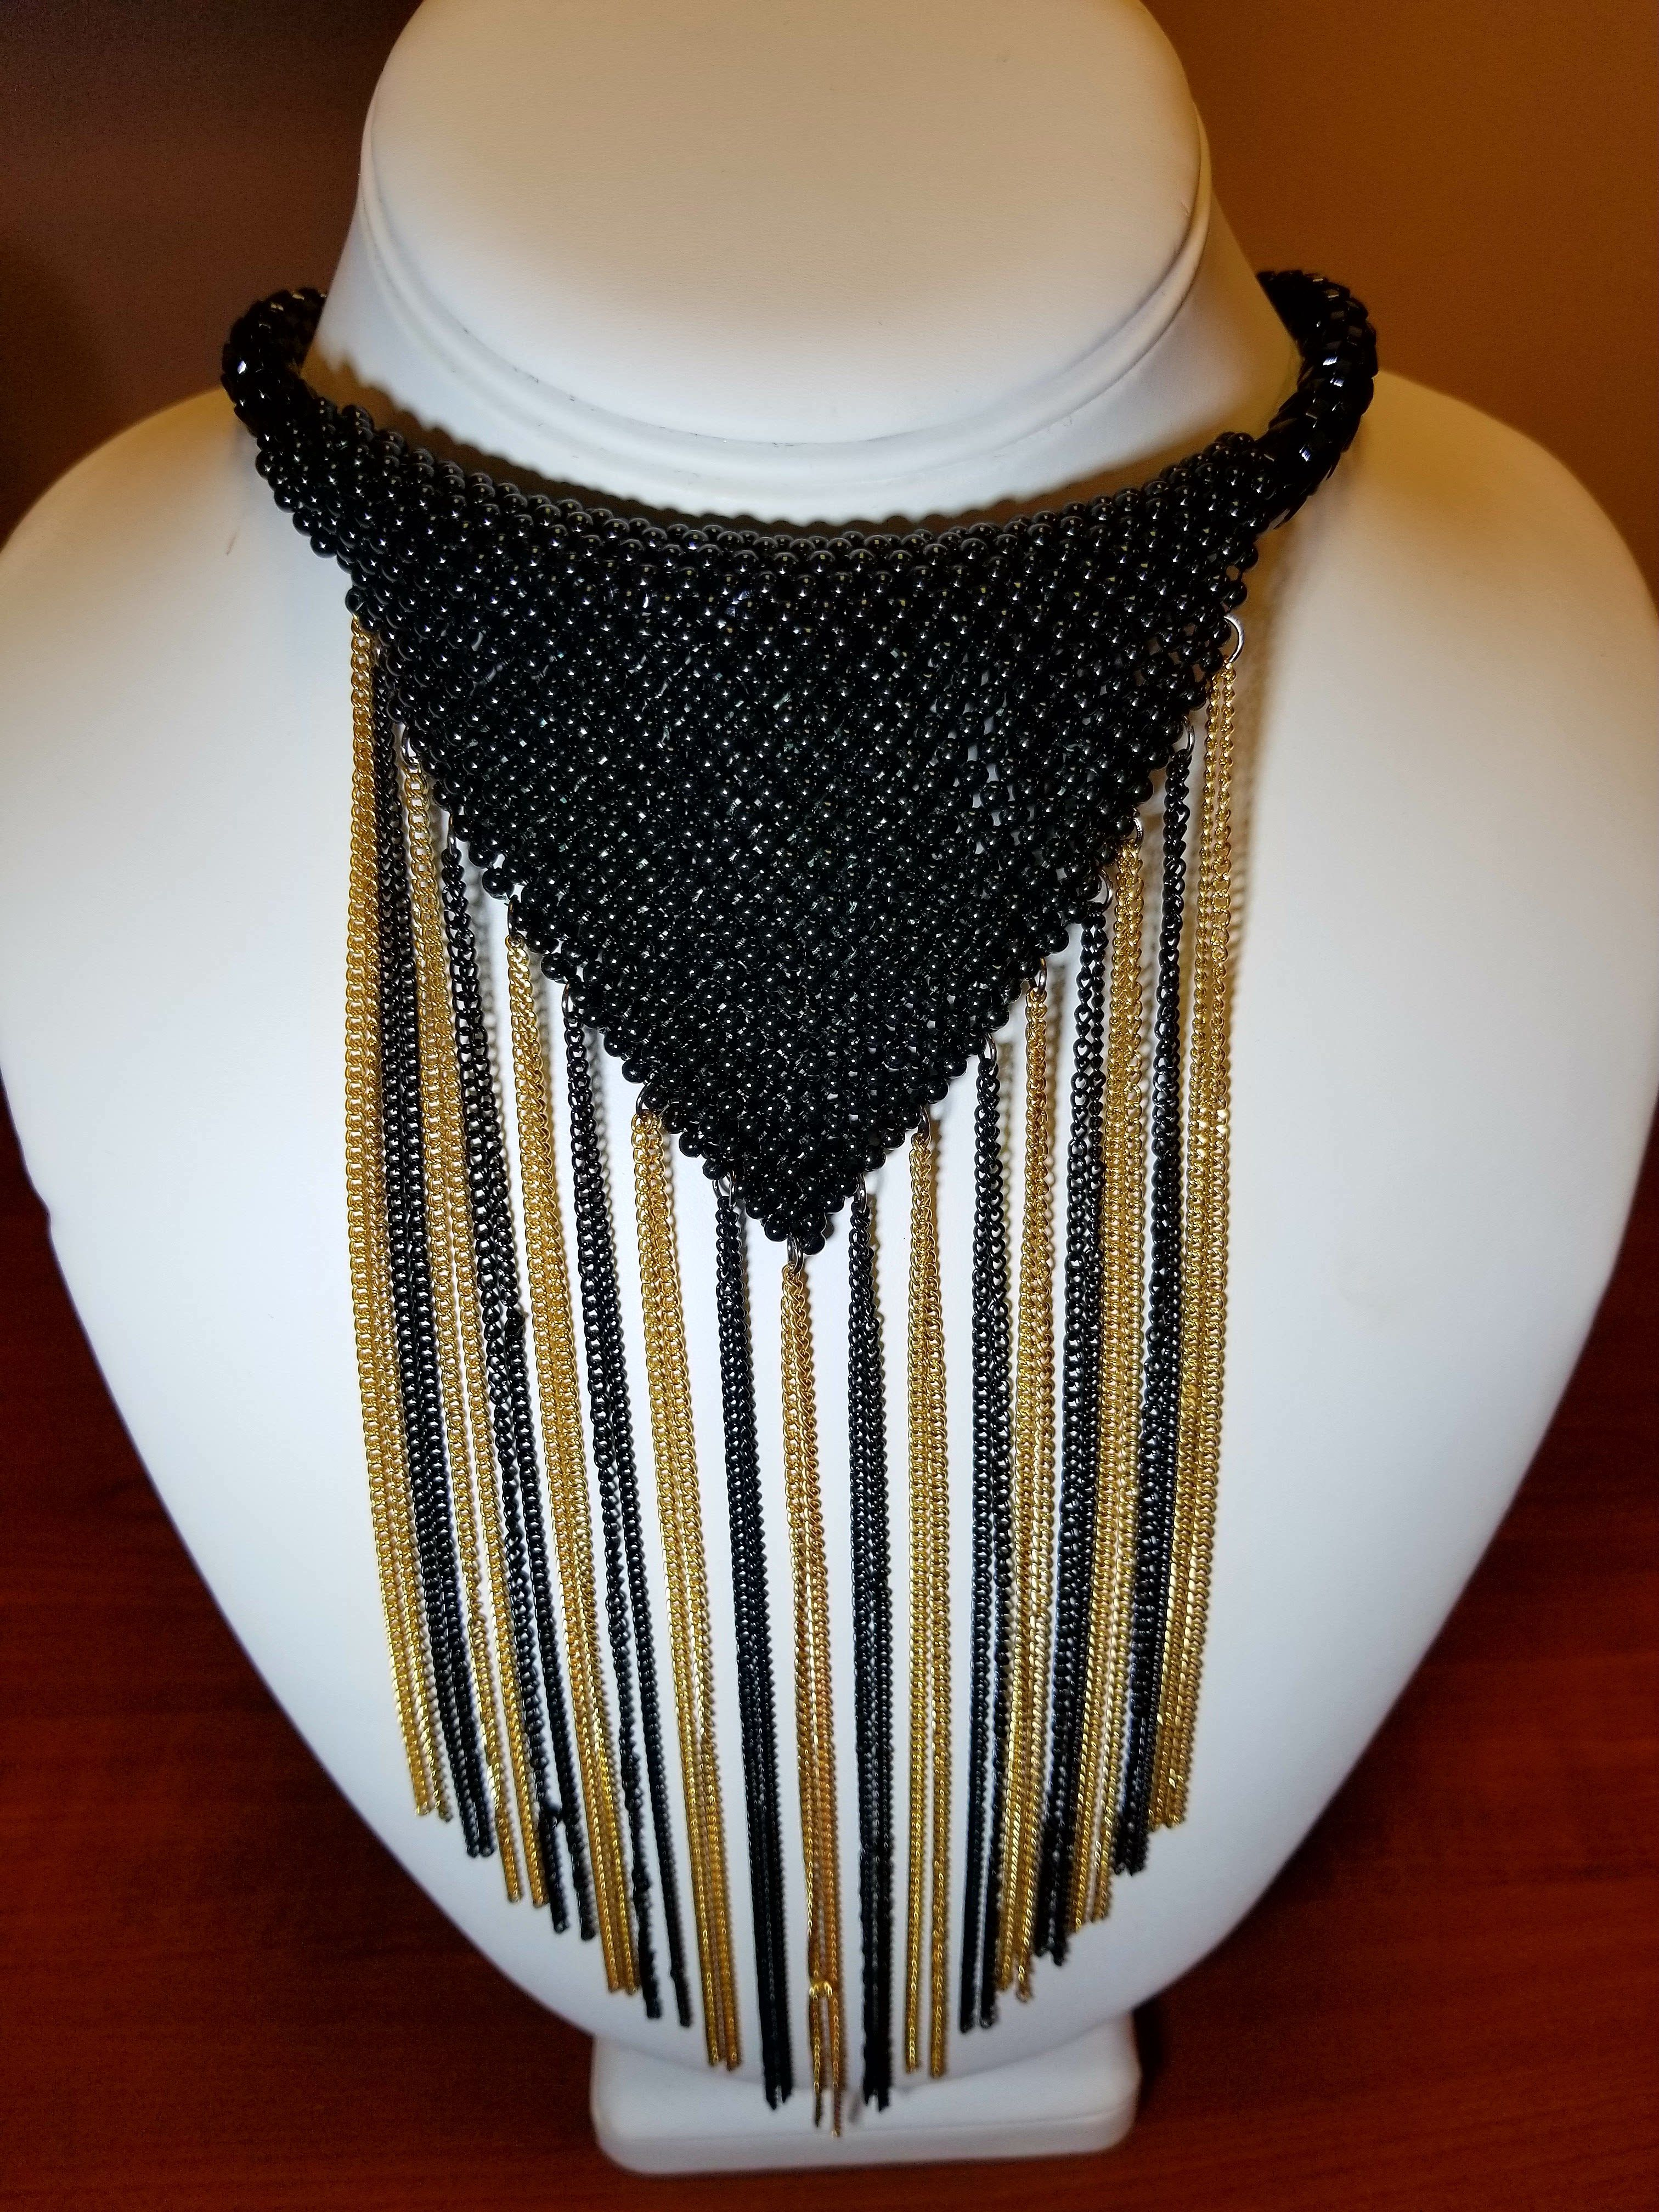 Womens Fashion Costume Jewelry Black and Gold Bib Necklace at Shop